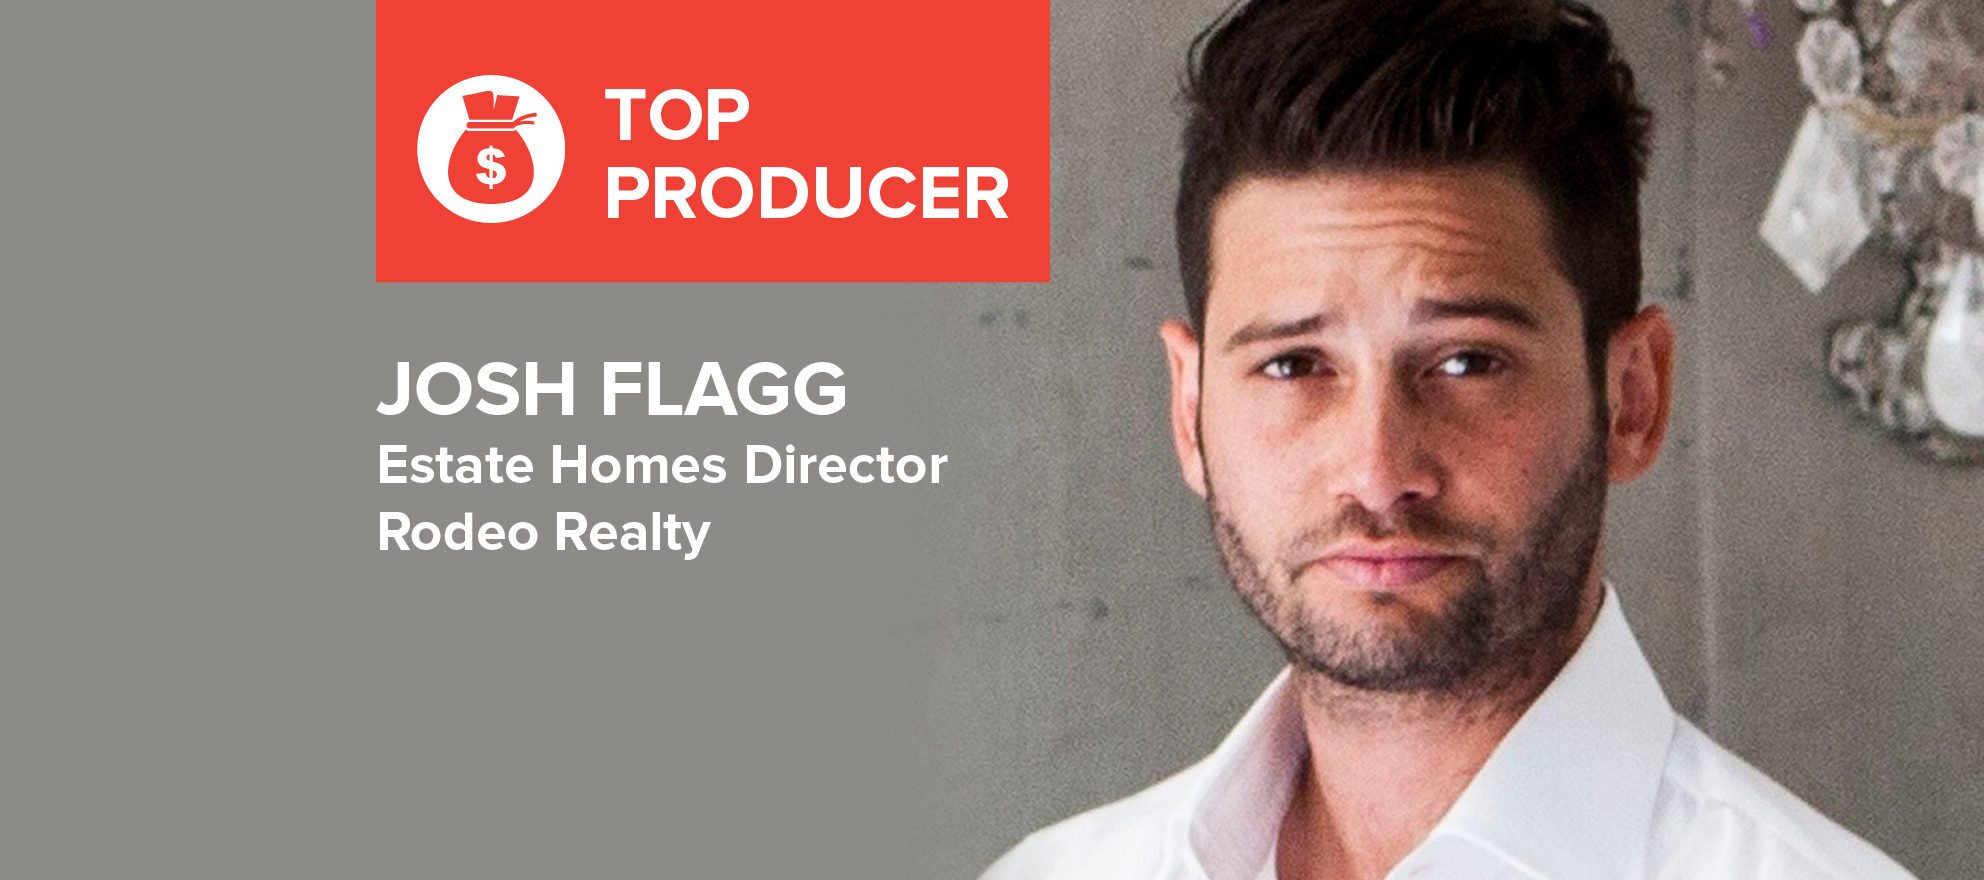 Josh Flagg on selling his first home at 18